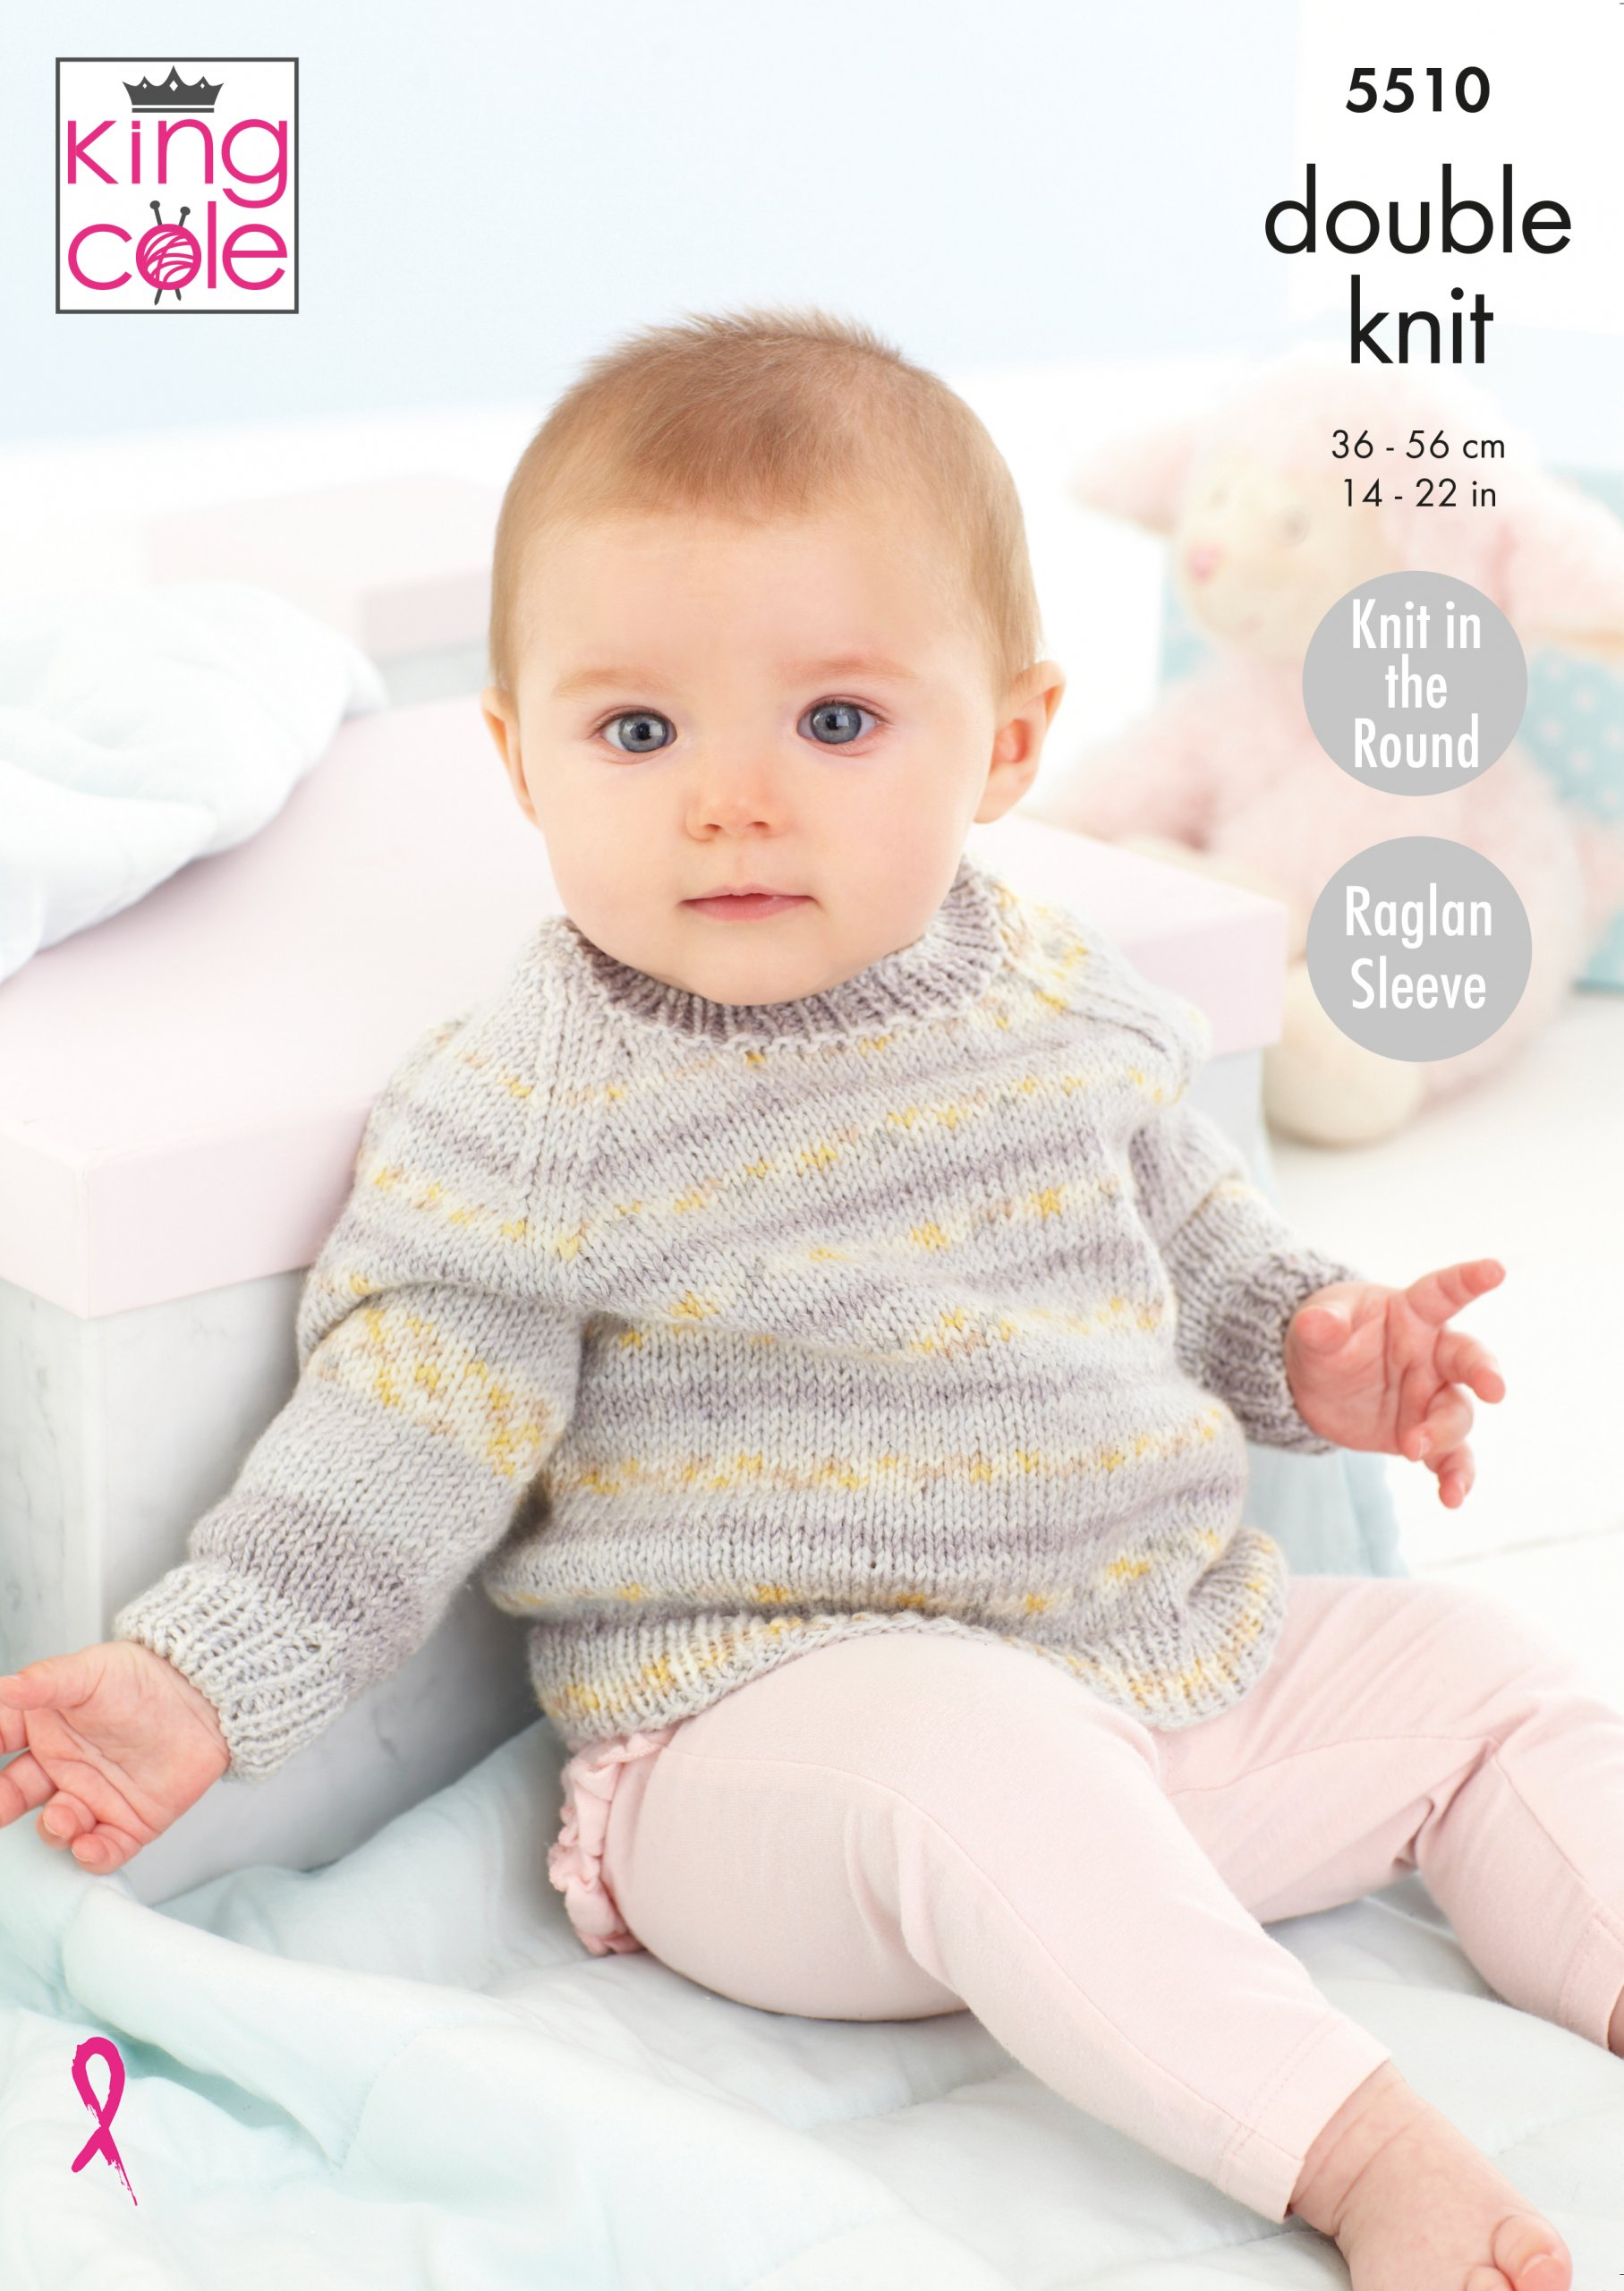 King Cole Double Knit Knitting Pattern Baby Raglan Sleeve Cardigans Sweater 5510